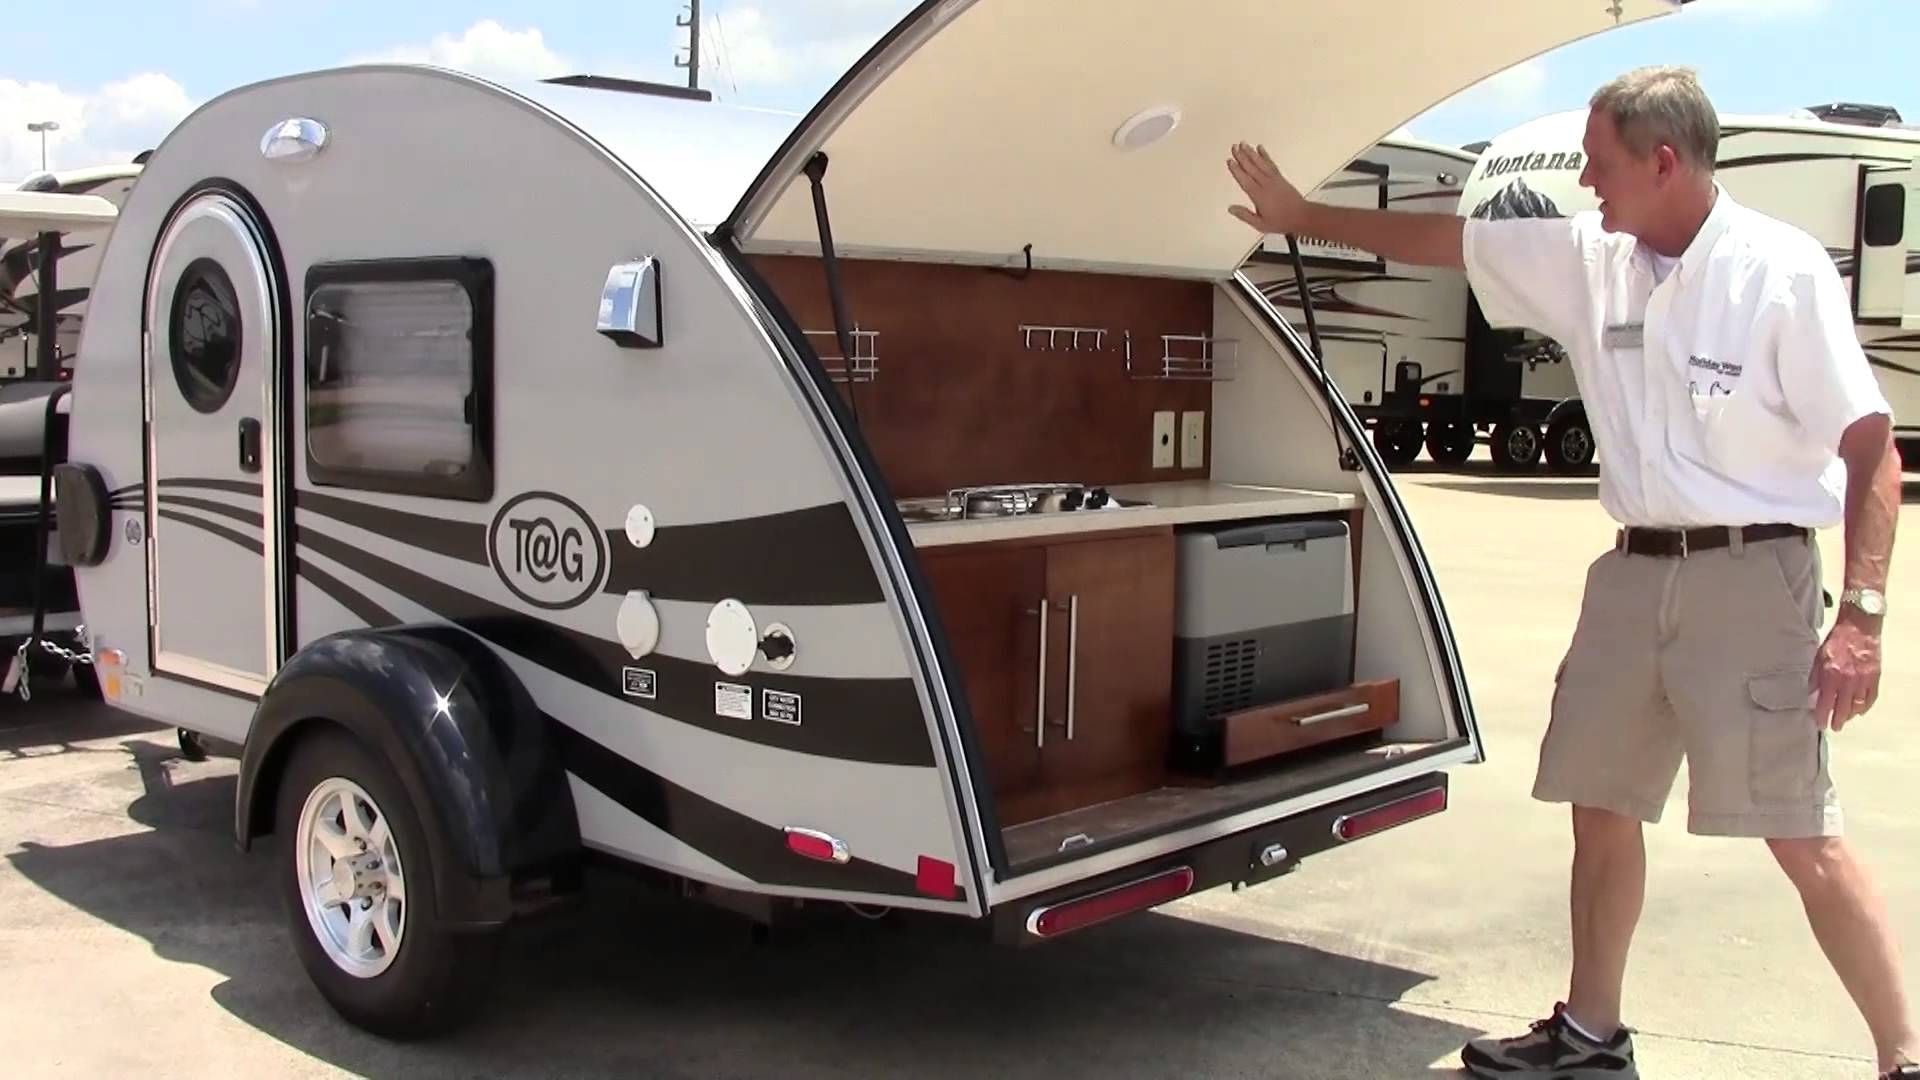 New 2015 Little Guy Teardrop Tag Travel Trailer RV - Holiday